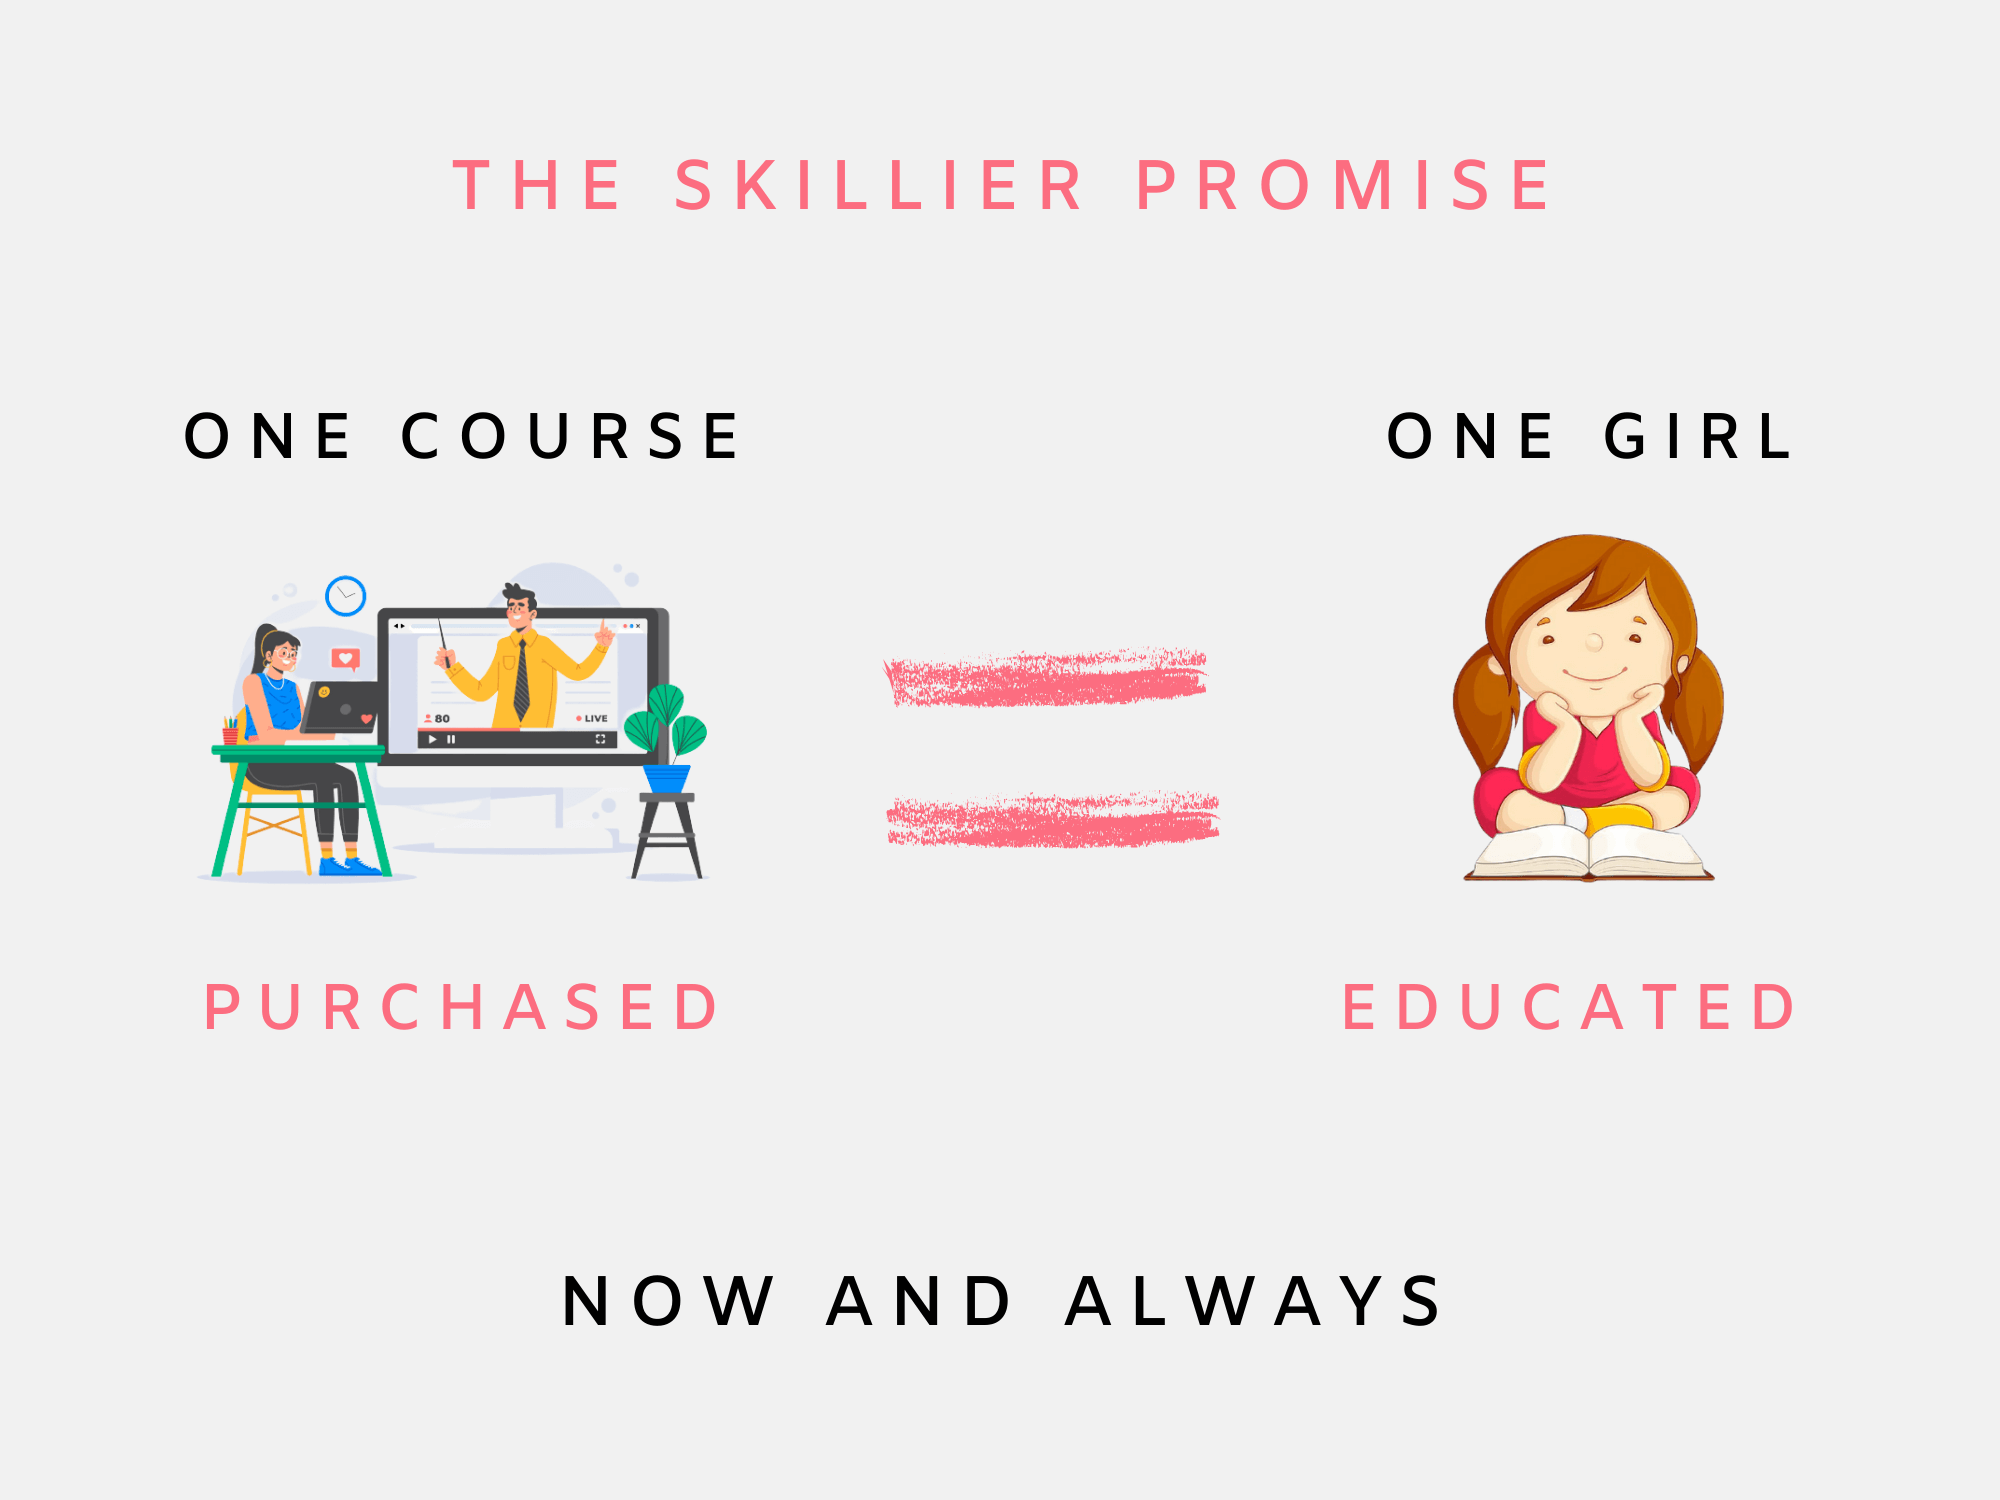 One Course Purchased = One Girl Educated